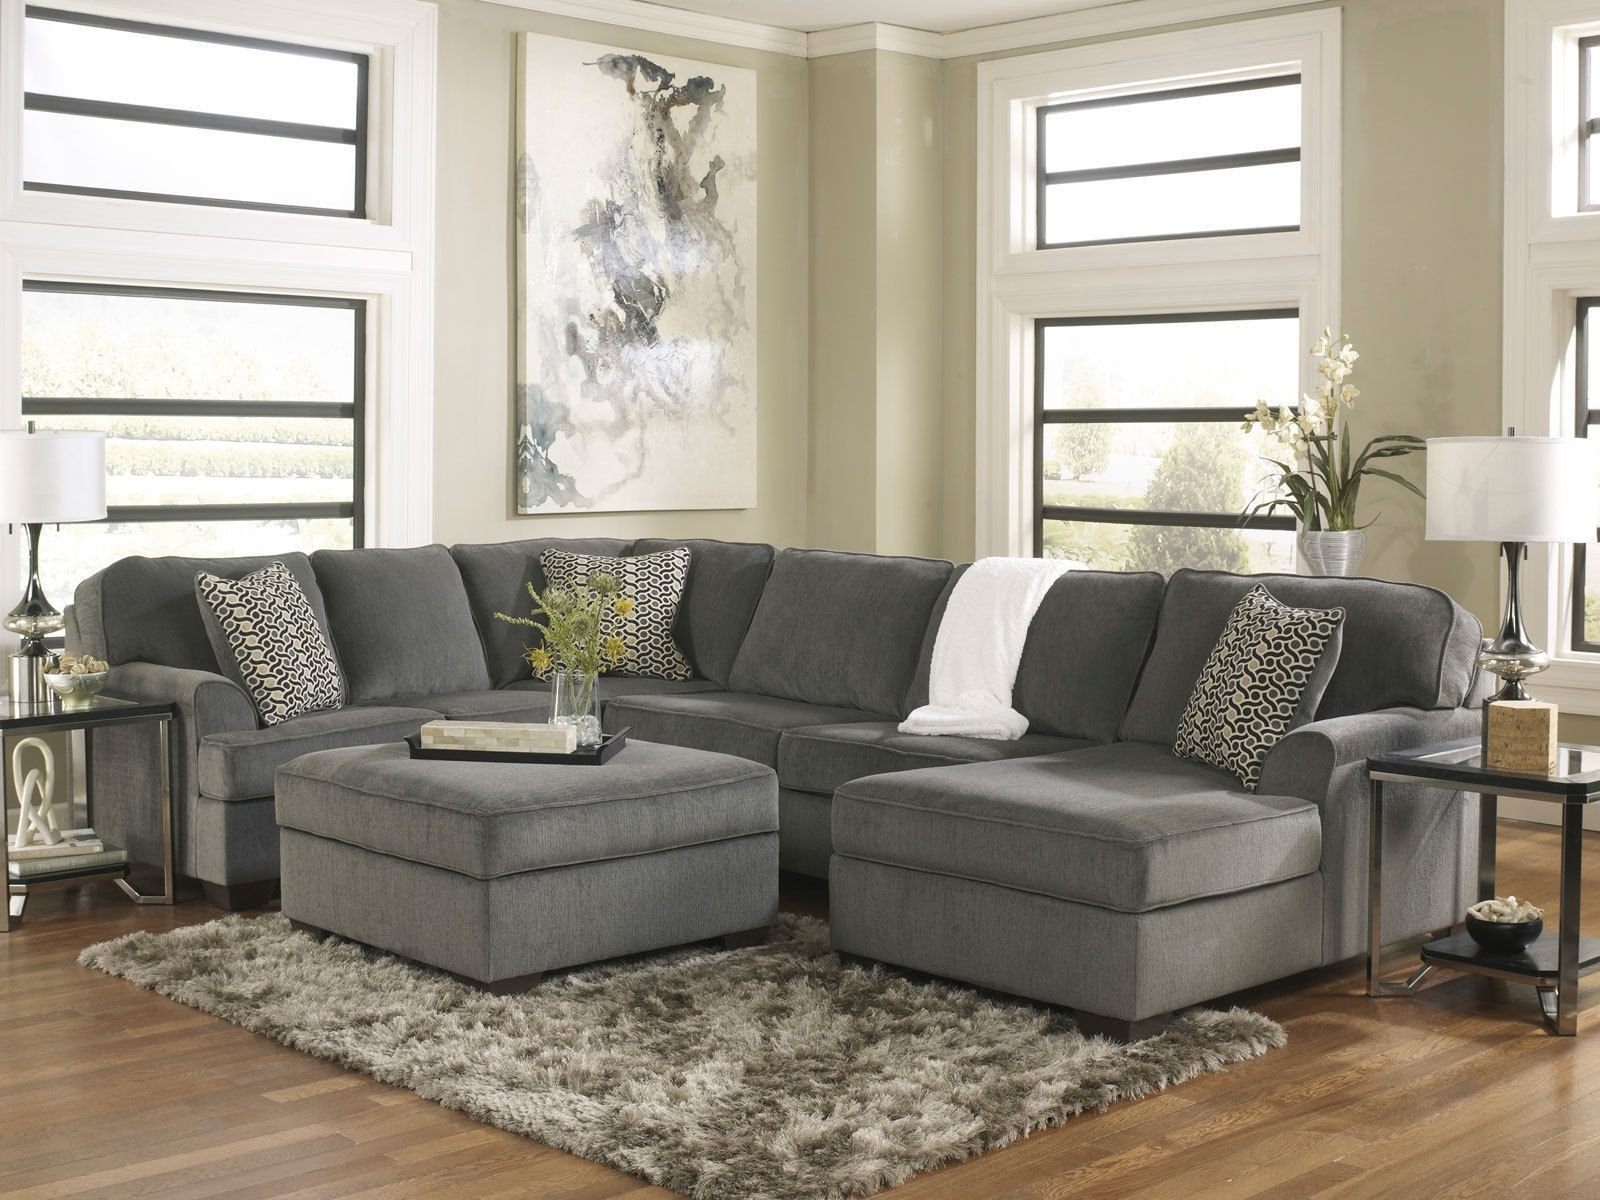 The Kittredge 3 Piece Sectional From Ashley Furniture Homestore Throughout 10X8 Sectional Sofas (View 2 of 10)